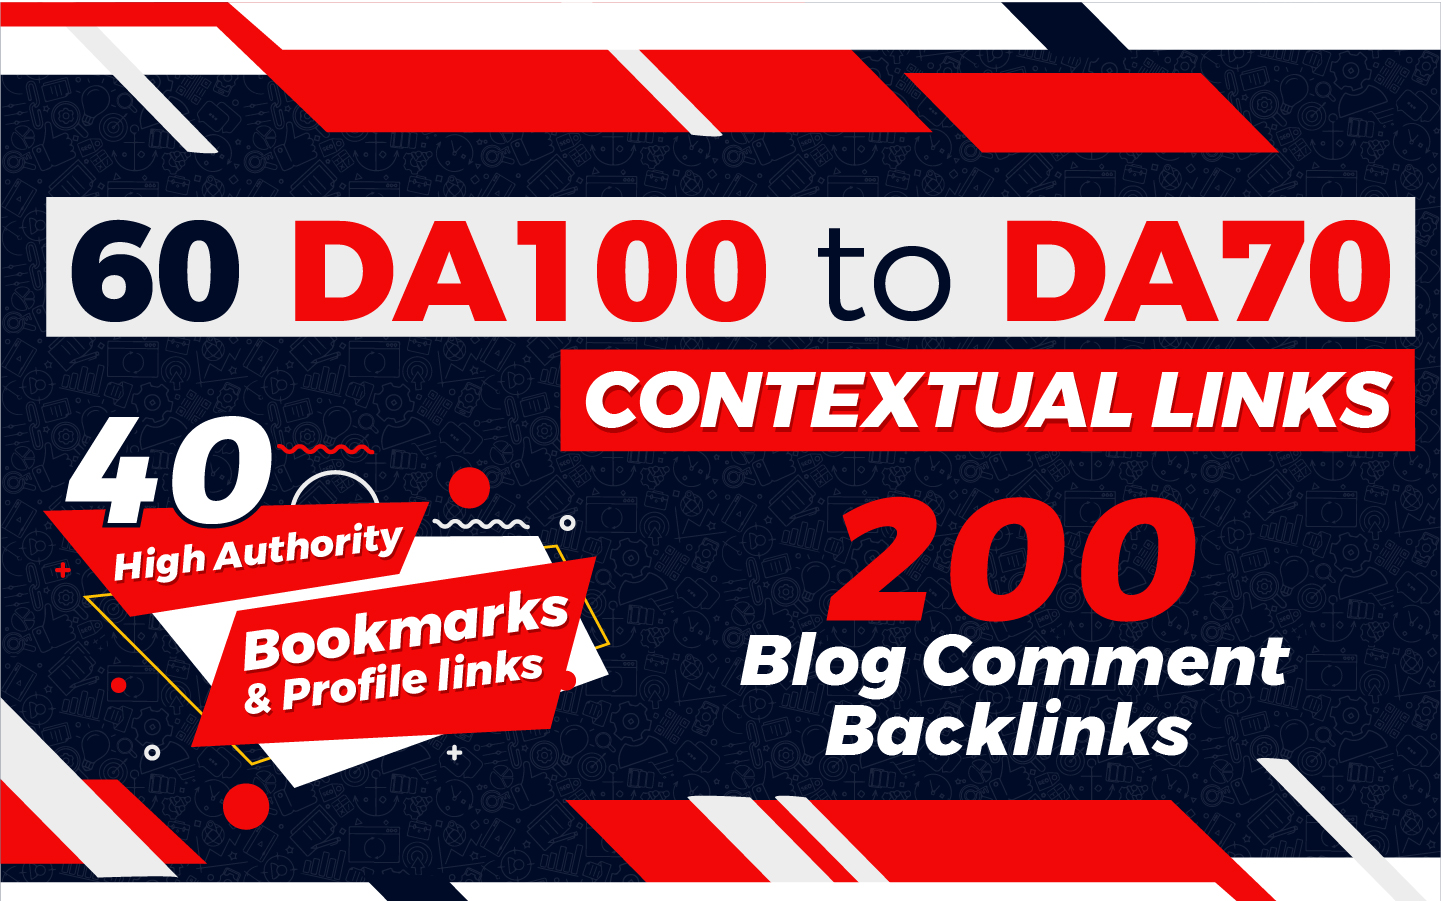 2022 BEST No.1 GUARANTEED SEO RANKING with 100 Contextual Links on DA70 - DA100 Unique Sites From RA